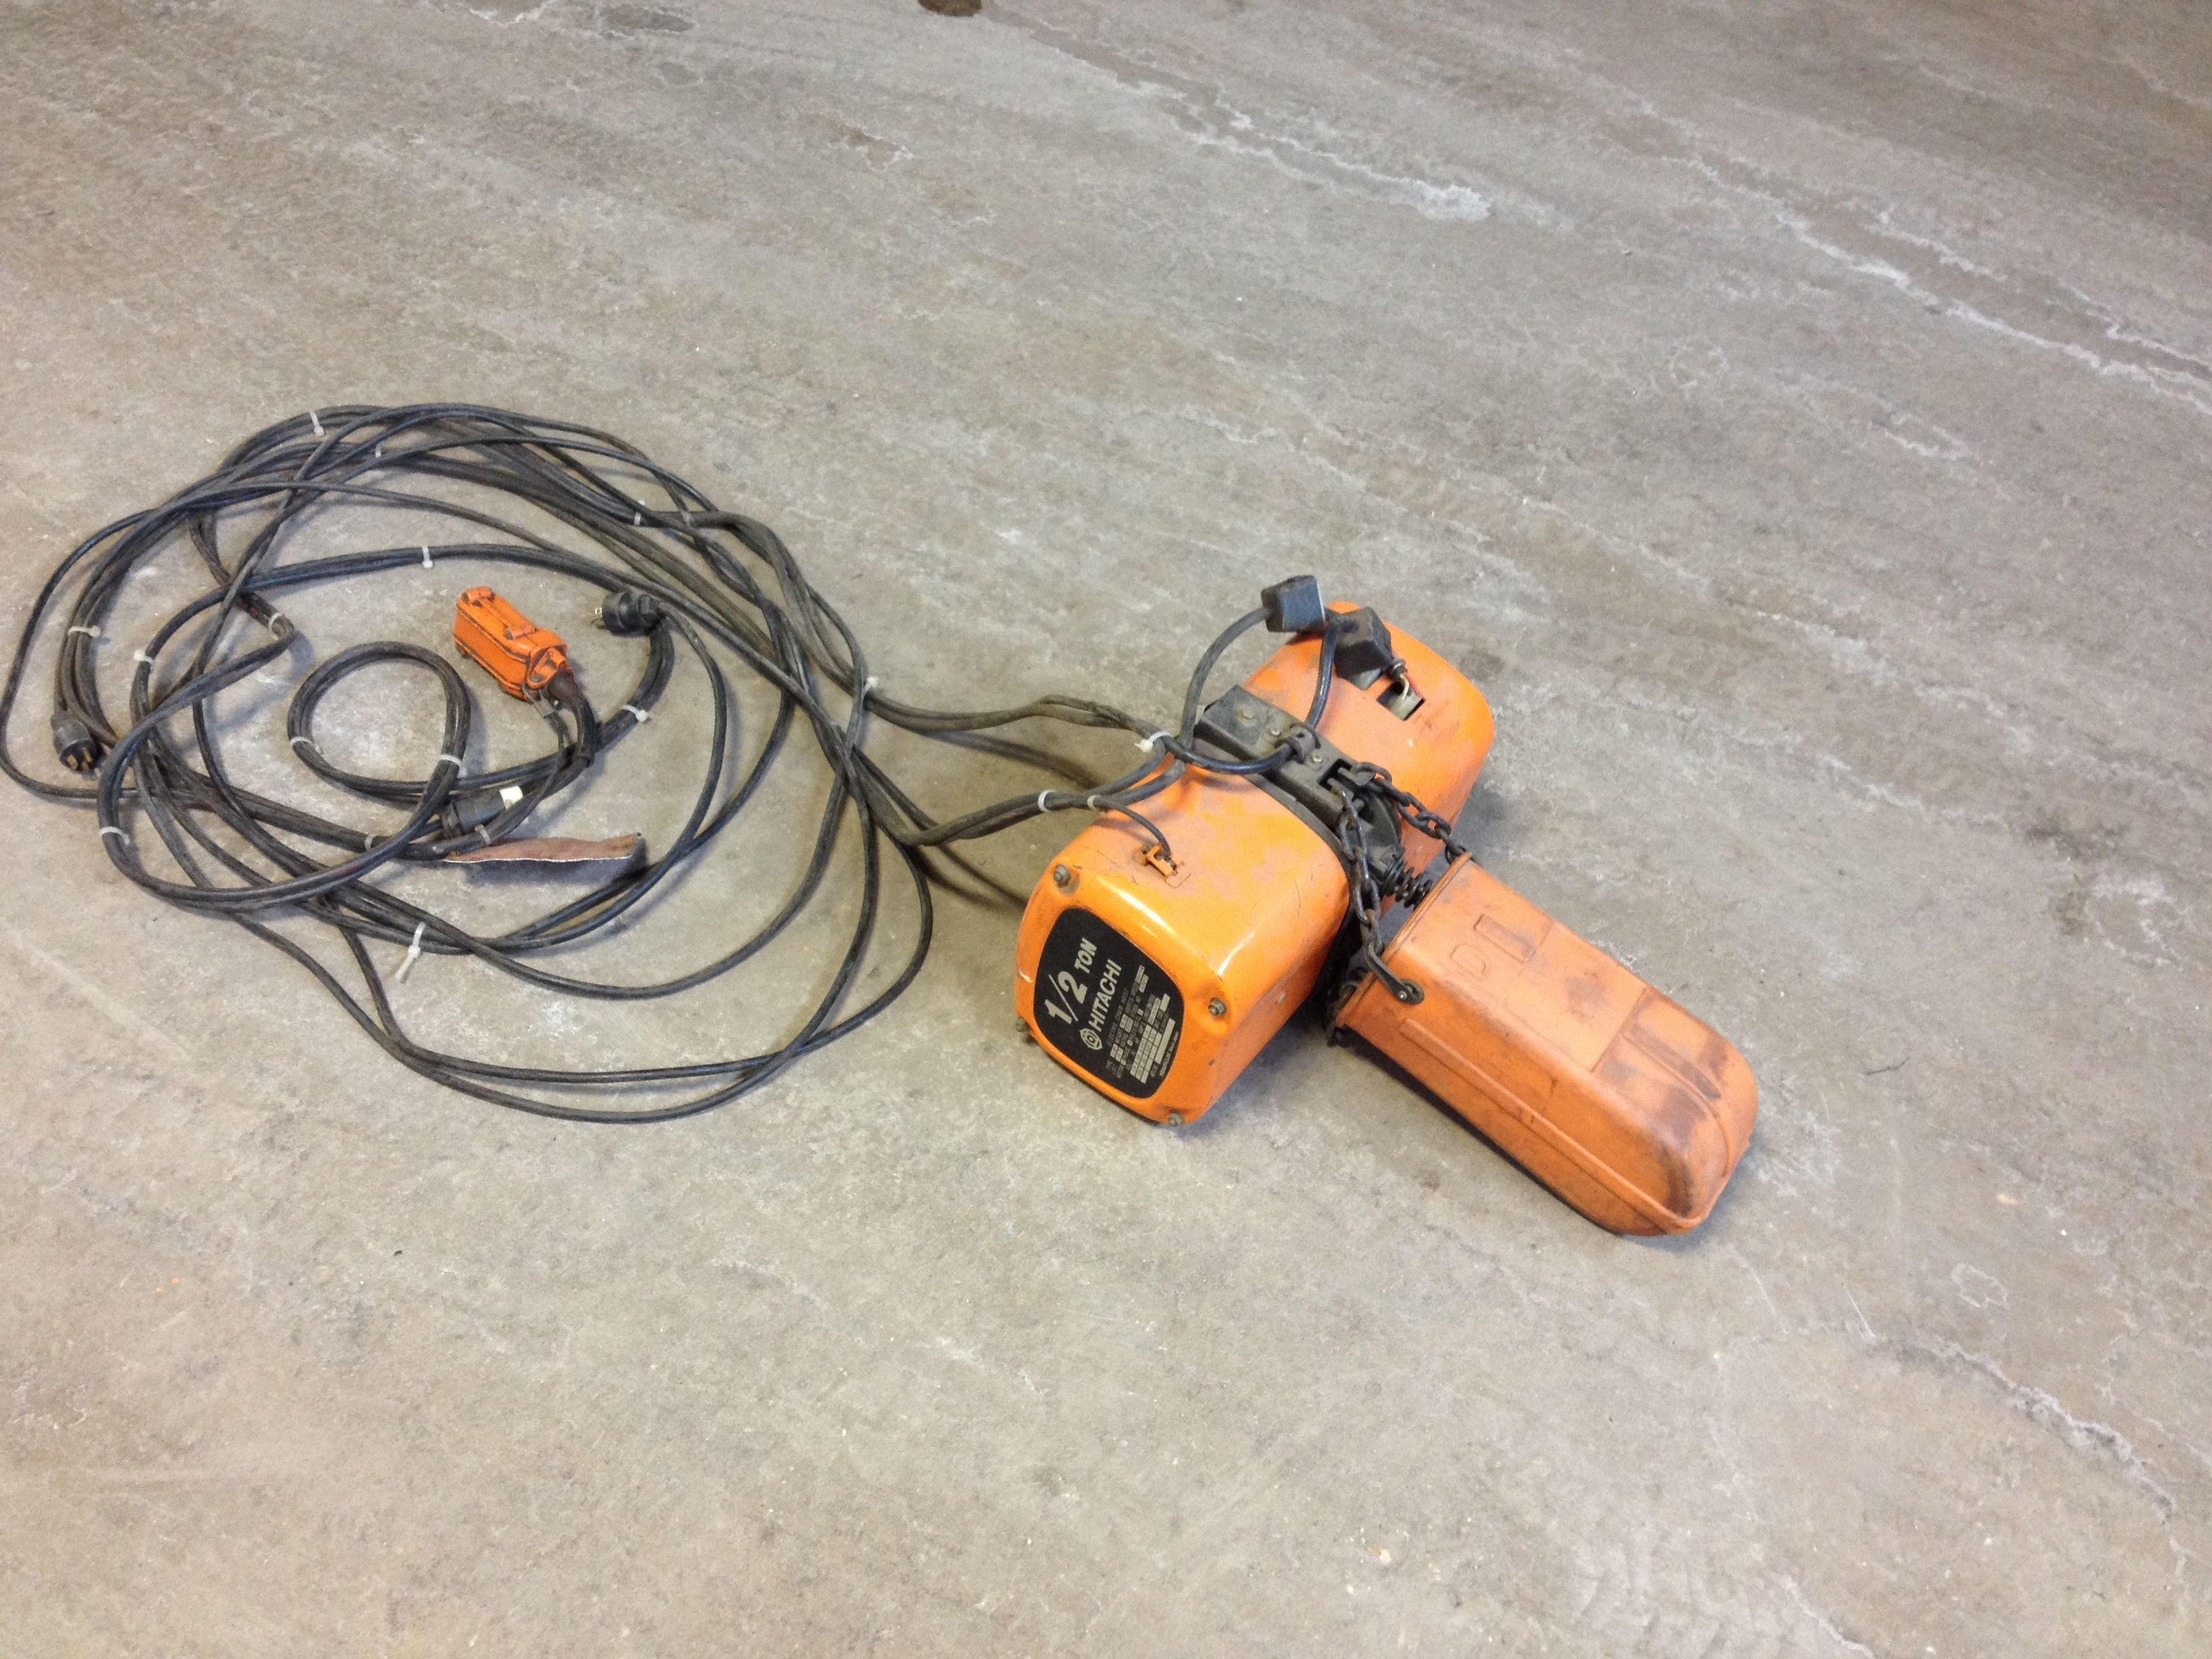 Hitachi 1 2 Ton Electric Chain Hoist Hoist Hitachi Vacuums